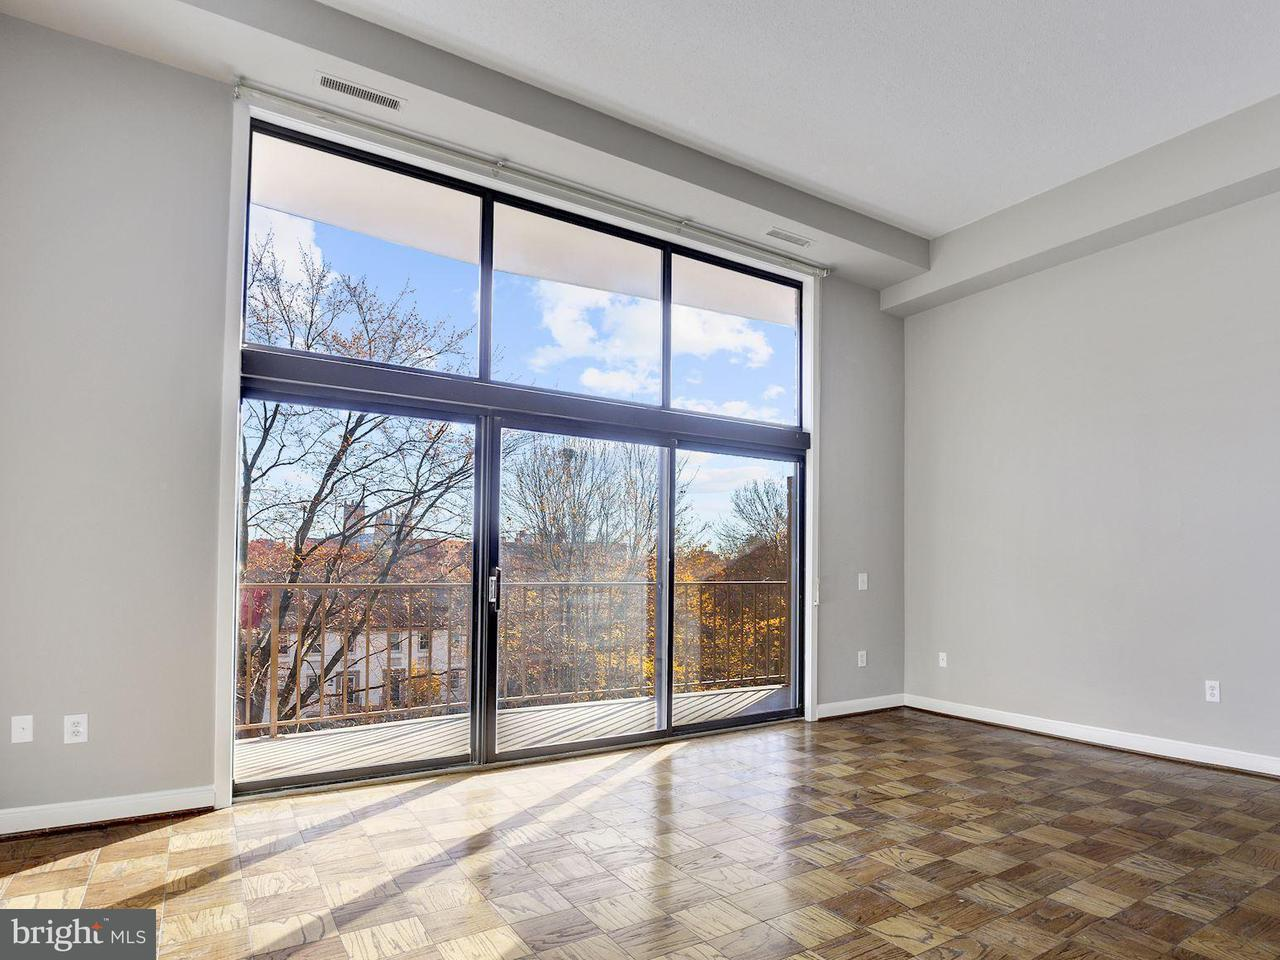 Condominium for Sale at 3101 New Mexico Ave NW #533 Washington, District Of Columbia 20016 United States